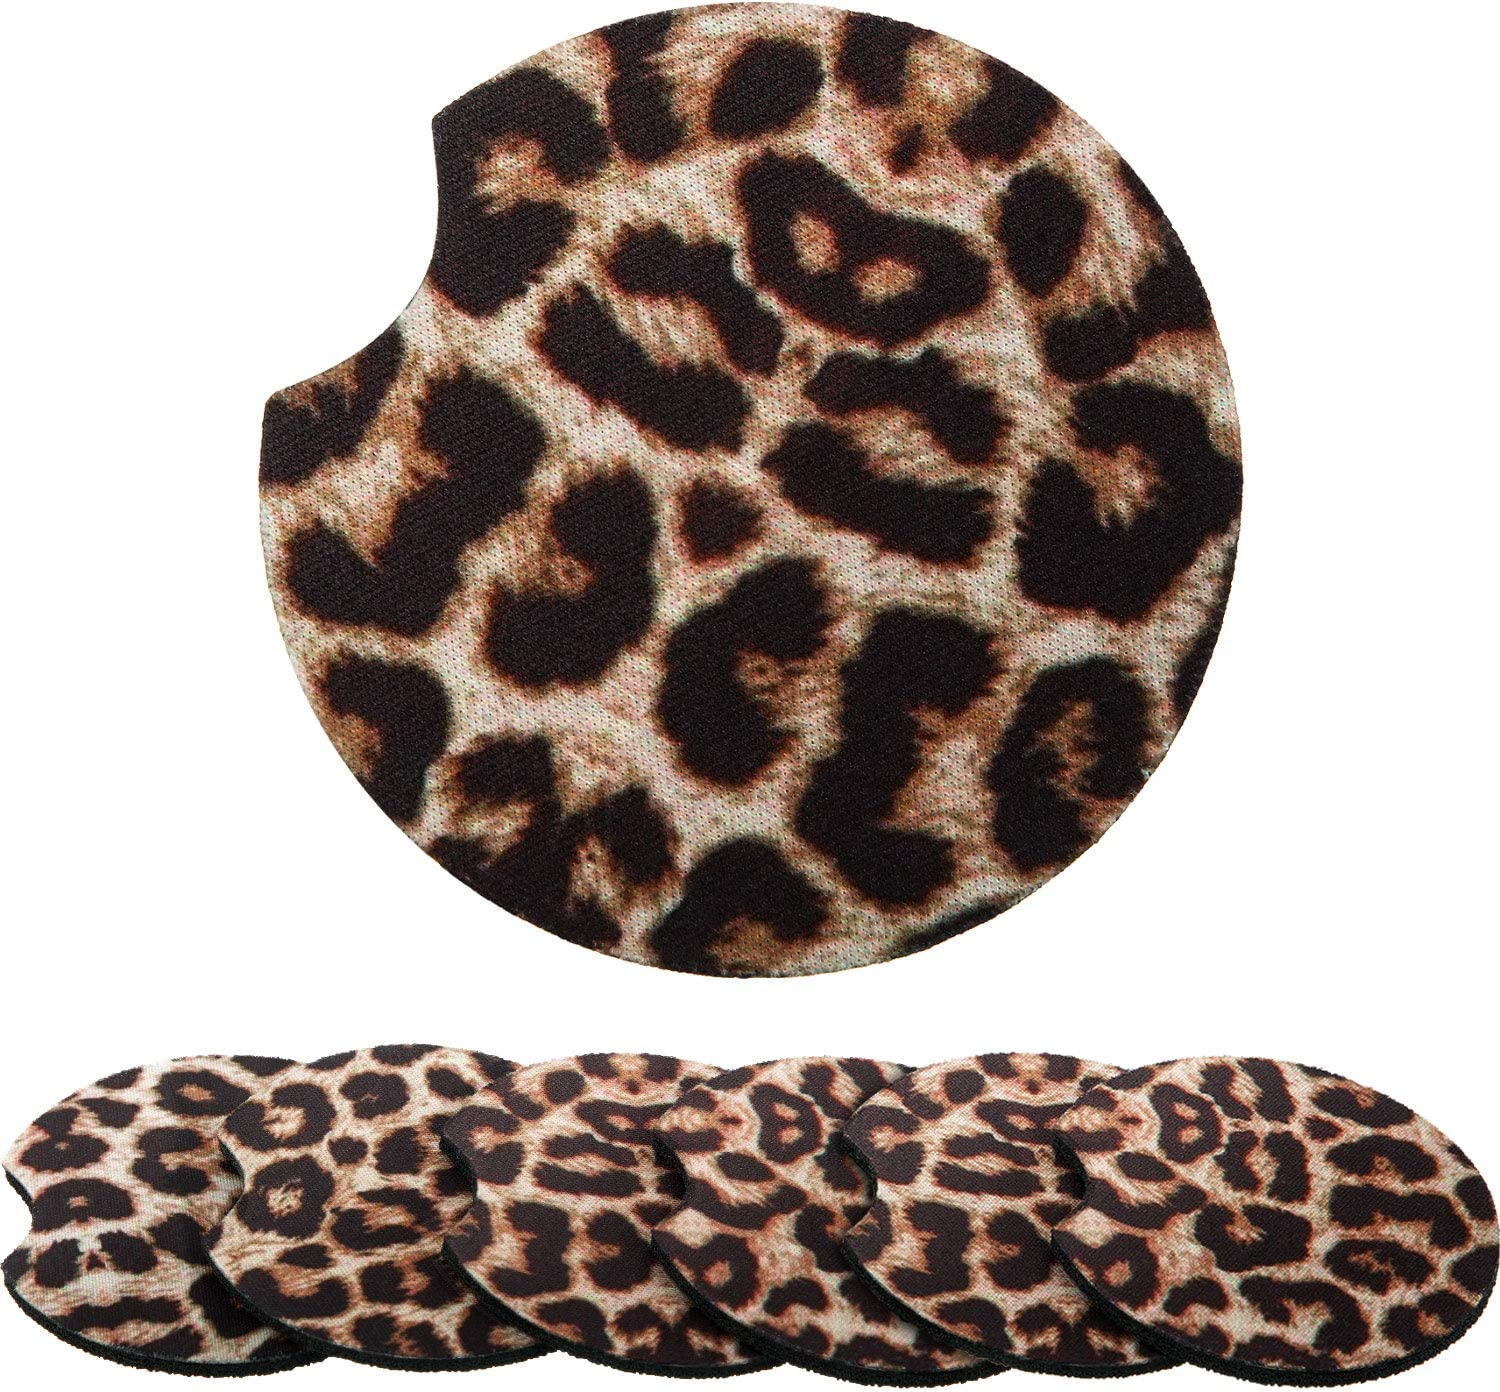 Boao 2.56 Inch Leopard Car Coasters for Drinks Neoprene Cup Coaster Rubber Car Cup Pad Mat Car Accessories for Car Living Room Kitchen Office to Protect Car and Furniture (6)